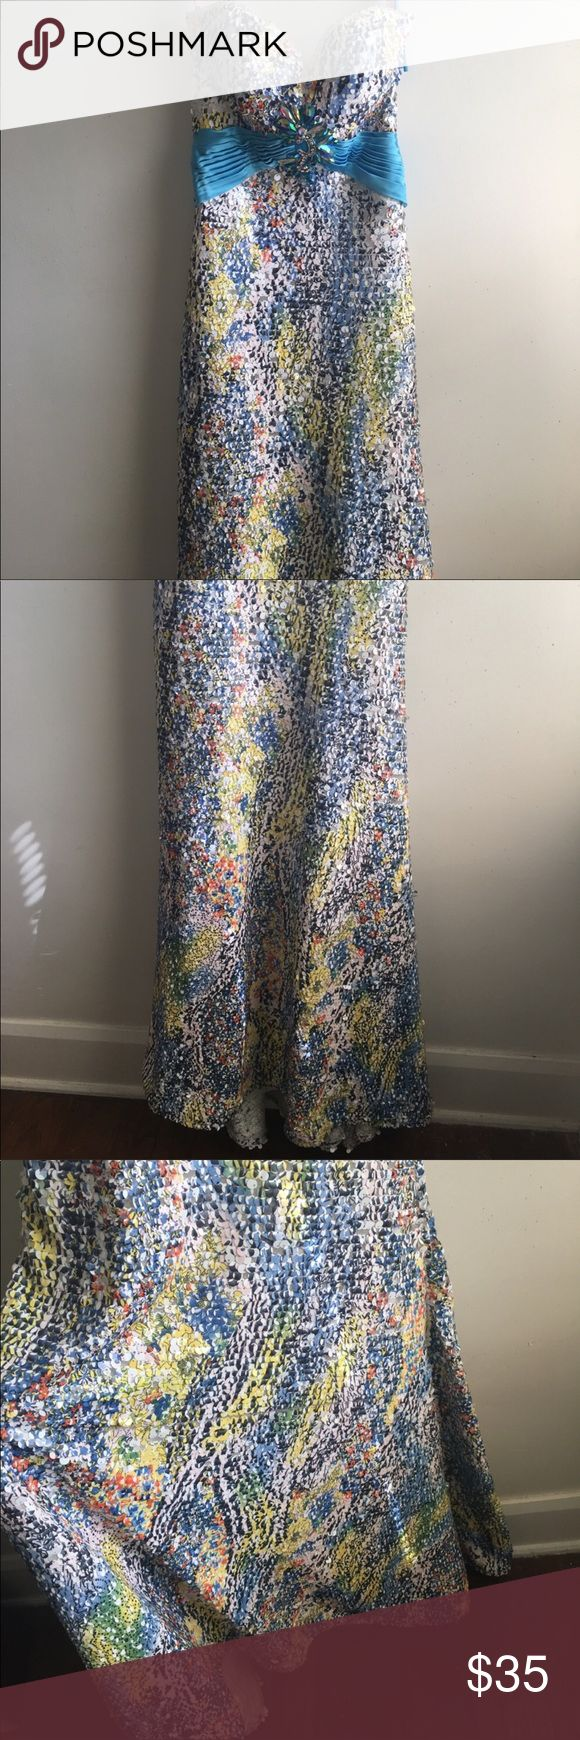 Sequin Rhinestone Animal Print Prom Dress Glitter Brand new  Sequin rhinestone glitter glam  Prom formal dress  Size 00 Fuller at the bottom with slight train  From the Blush Prom collection  Dress retails nearly $500  Has defects  - sequins and rhinestones are loose, some missing  - the thread of the blue waist band has come undone  Could be worn without fixing Strapless  PRICE IS NEGOTIABLE Blush Prom Dresses Prom